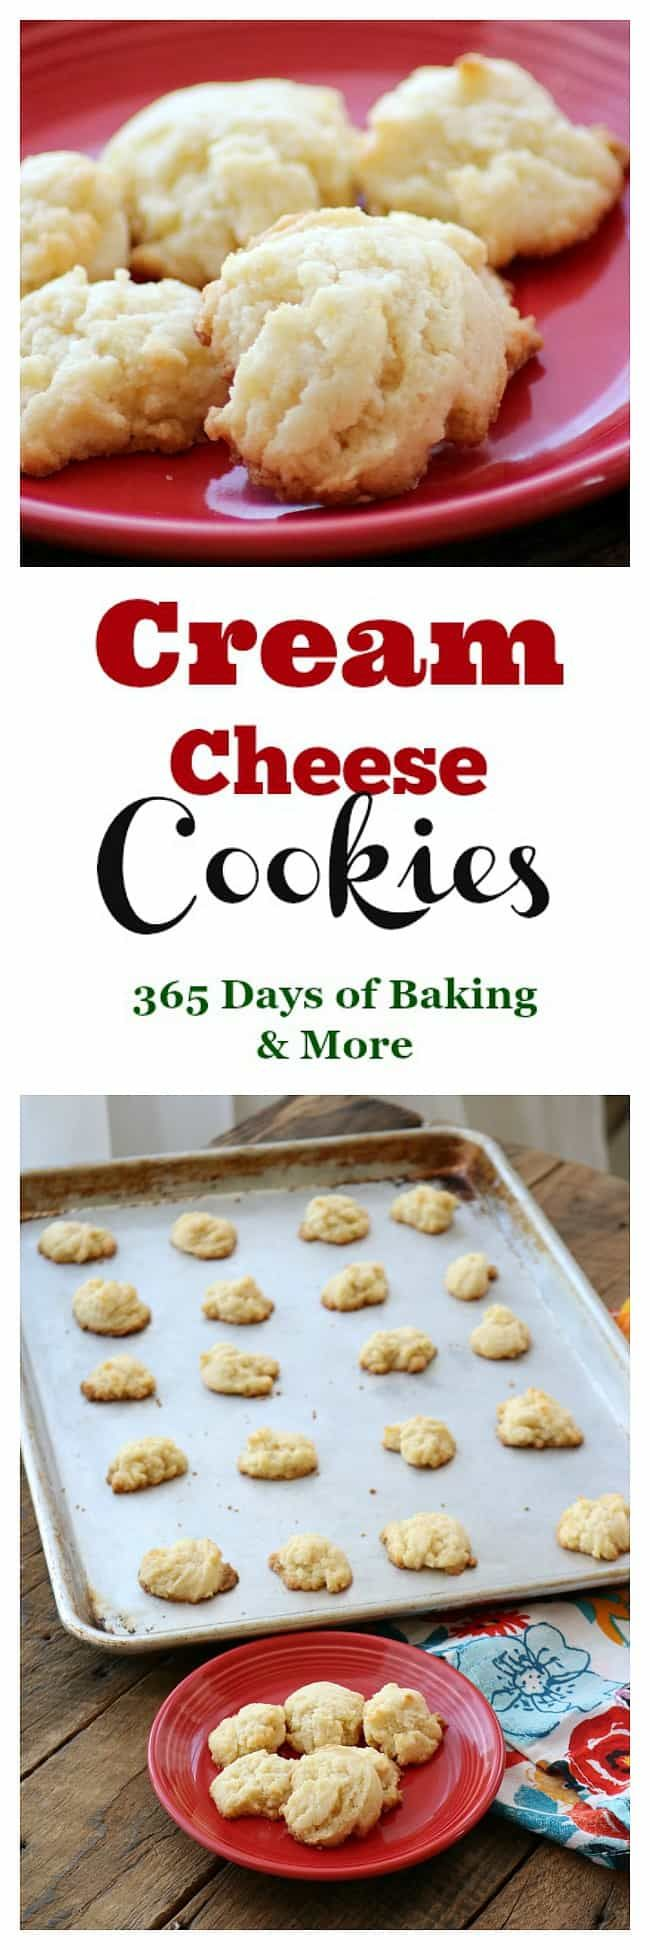 These Cream Cheese cookies are super simple to make, are light and so delicious that it's easy to eat more than one!